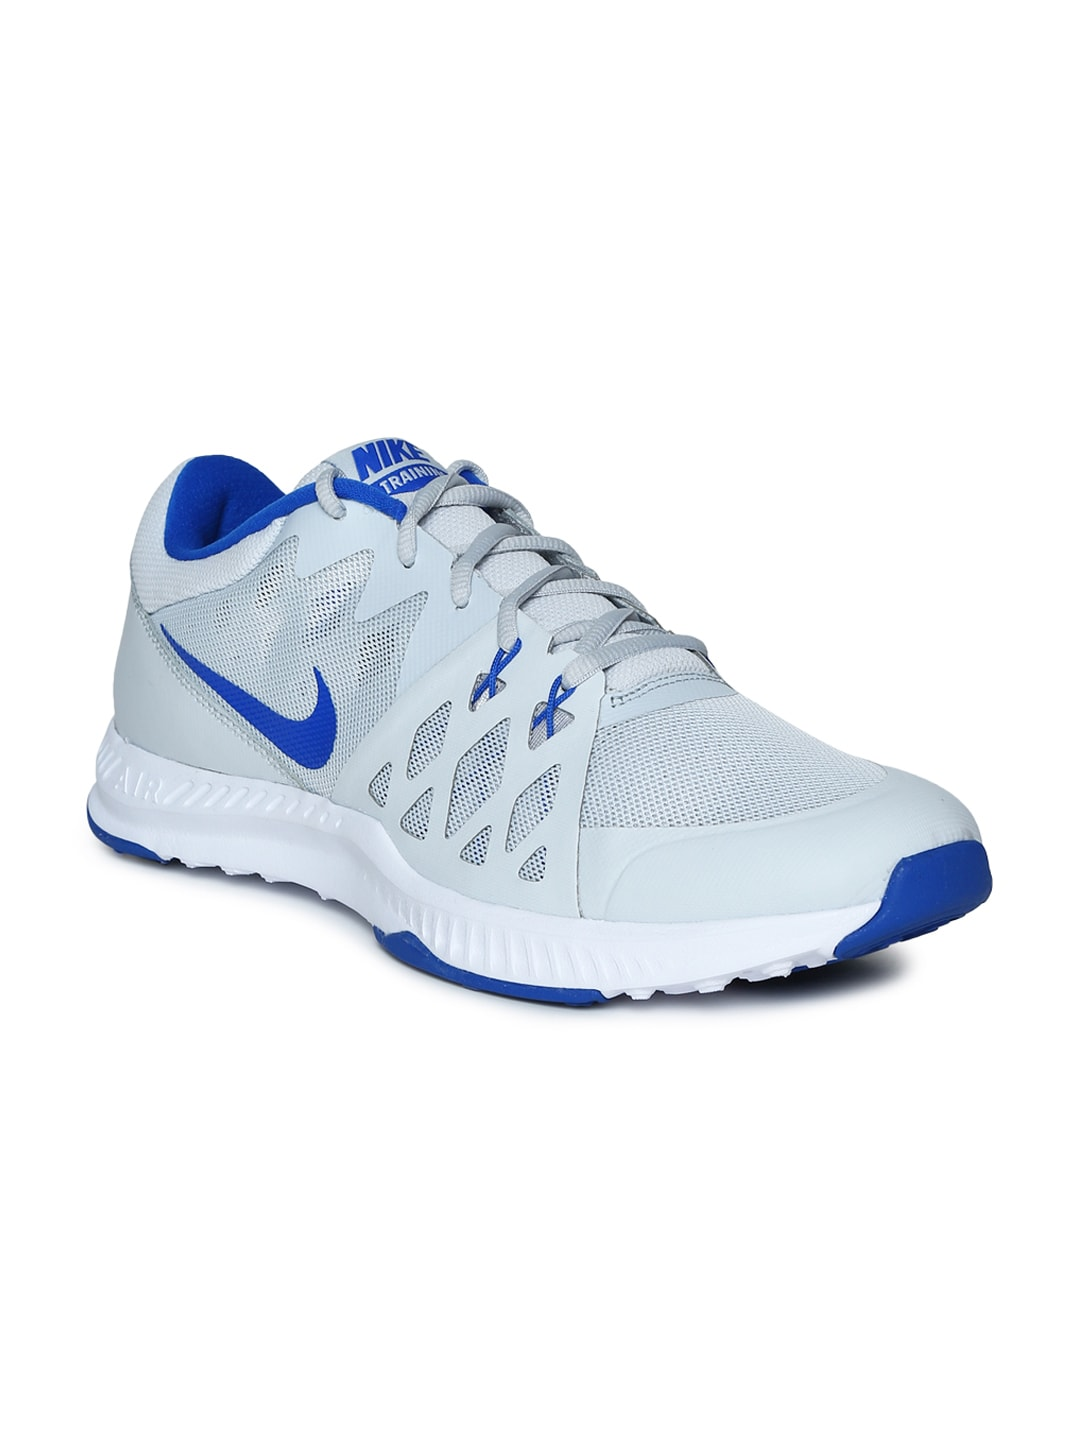 Buy Price OnlineMyntra Shoe Shoes At Sport Nike Best EeWD9IY2Hb